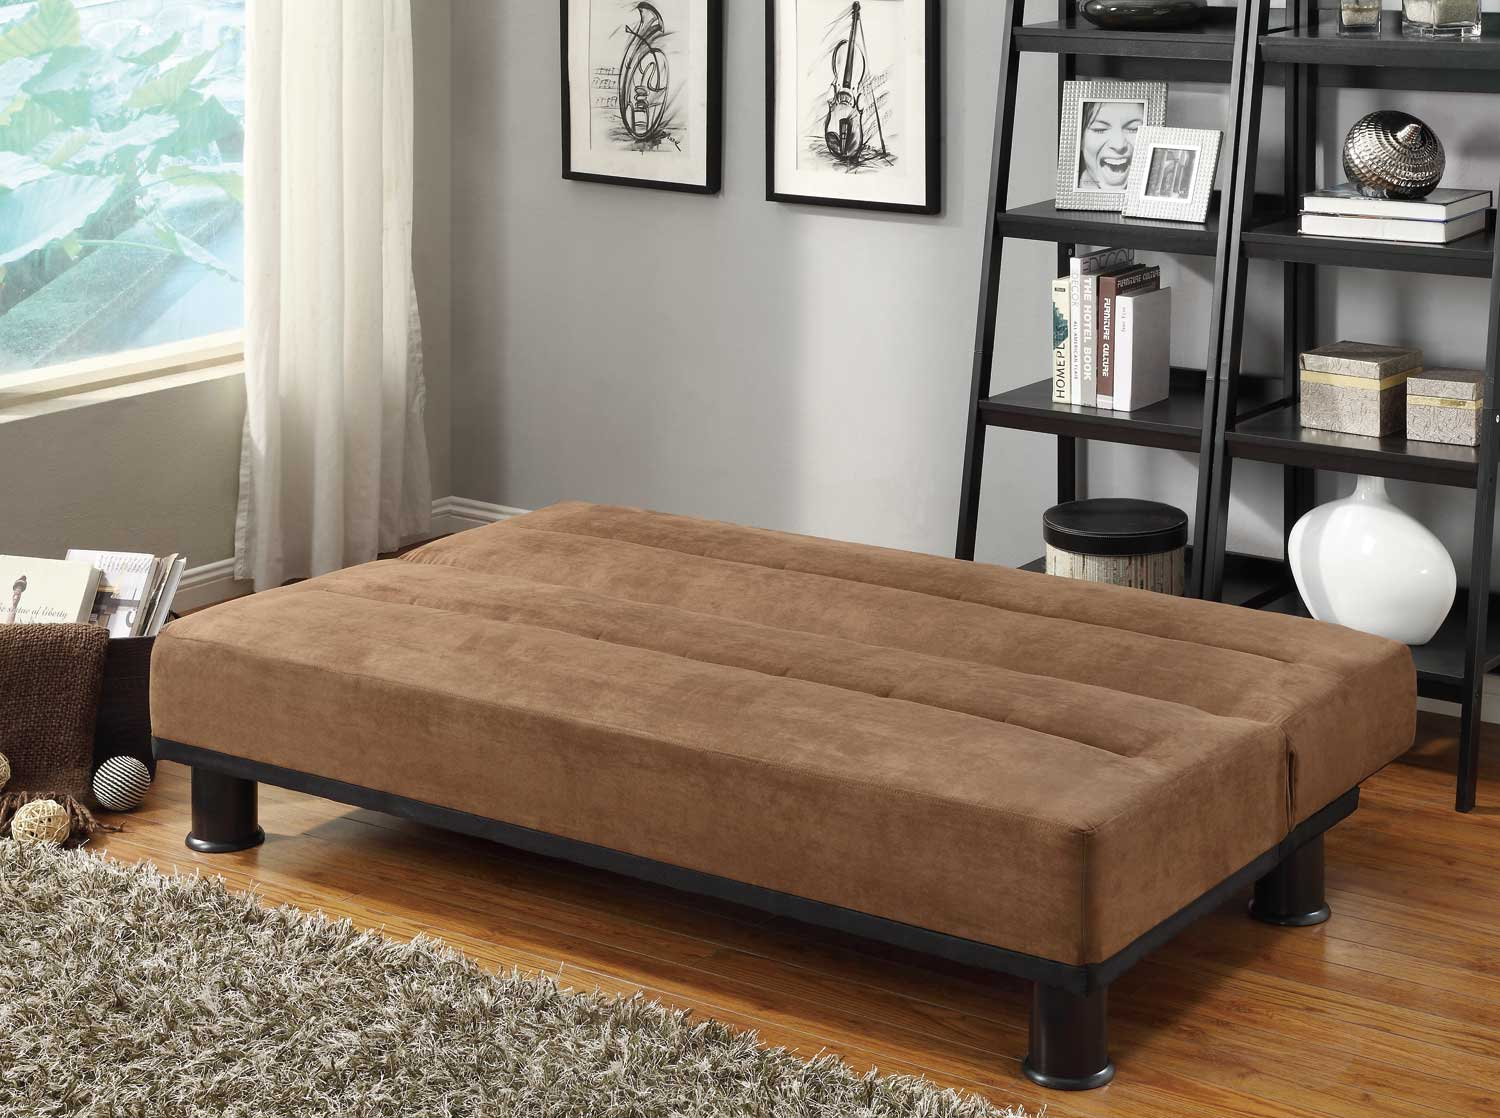 Homelegance Callie Click-Clack Sofa Bed - Brown - Microfiber